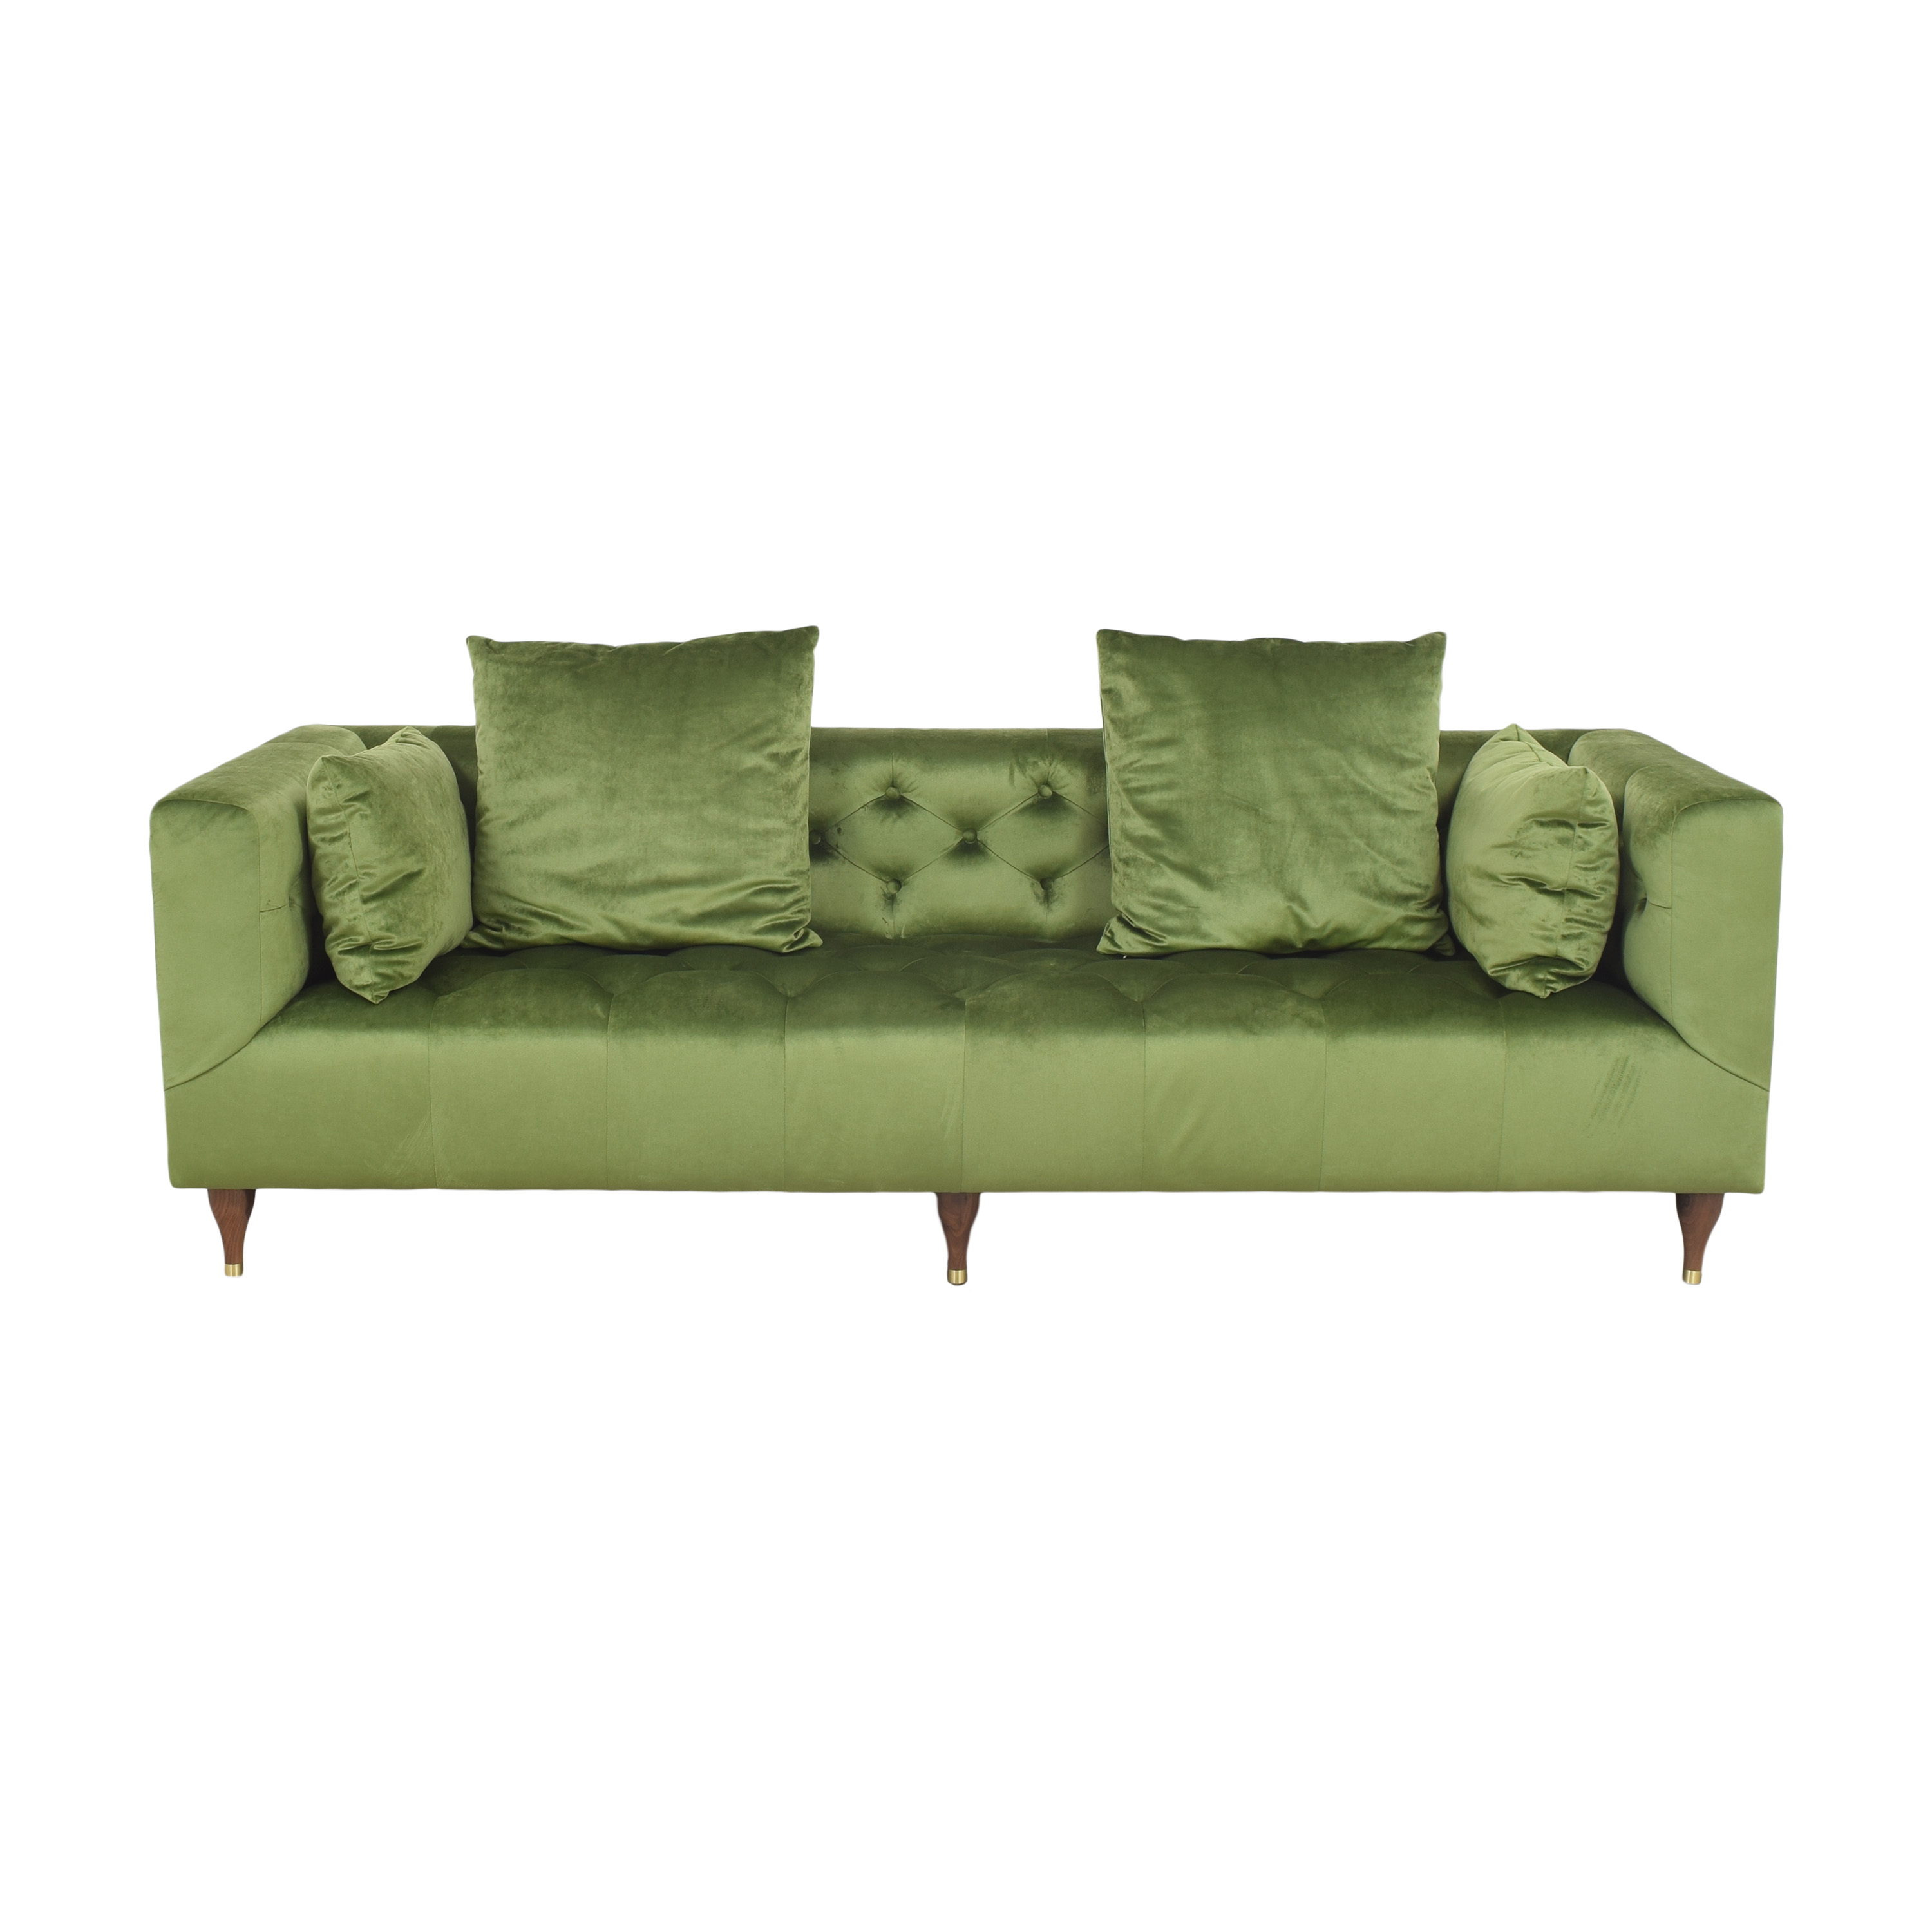 Interior Define Interior Define Ms. Chesterfield Tufted Sofa dimensions